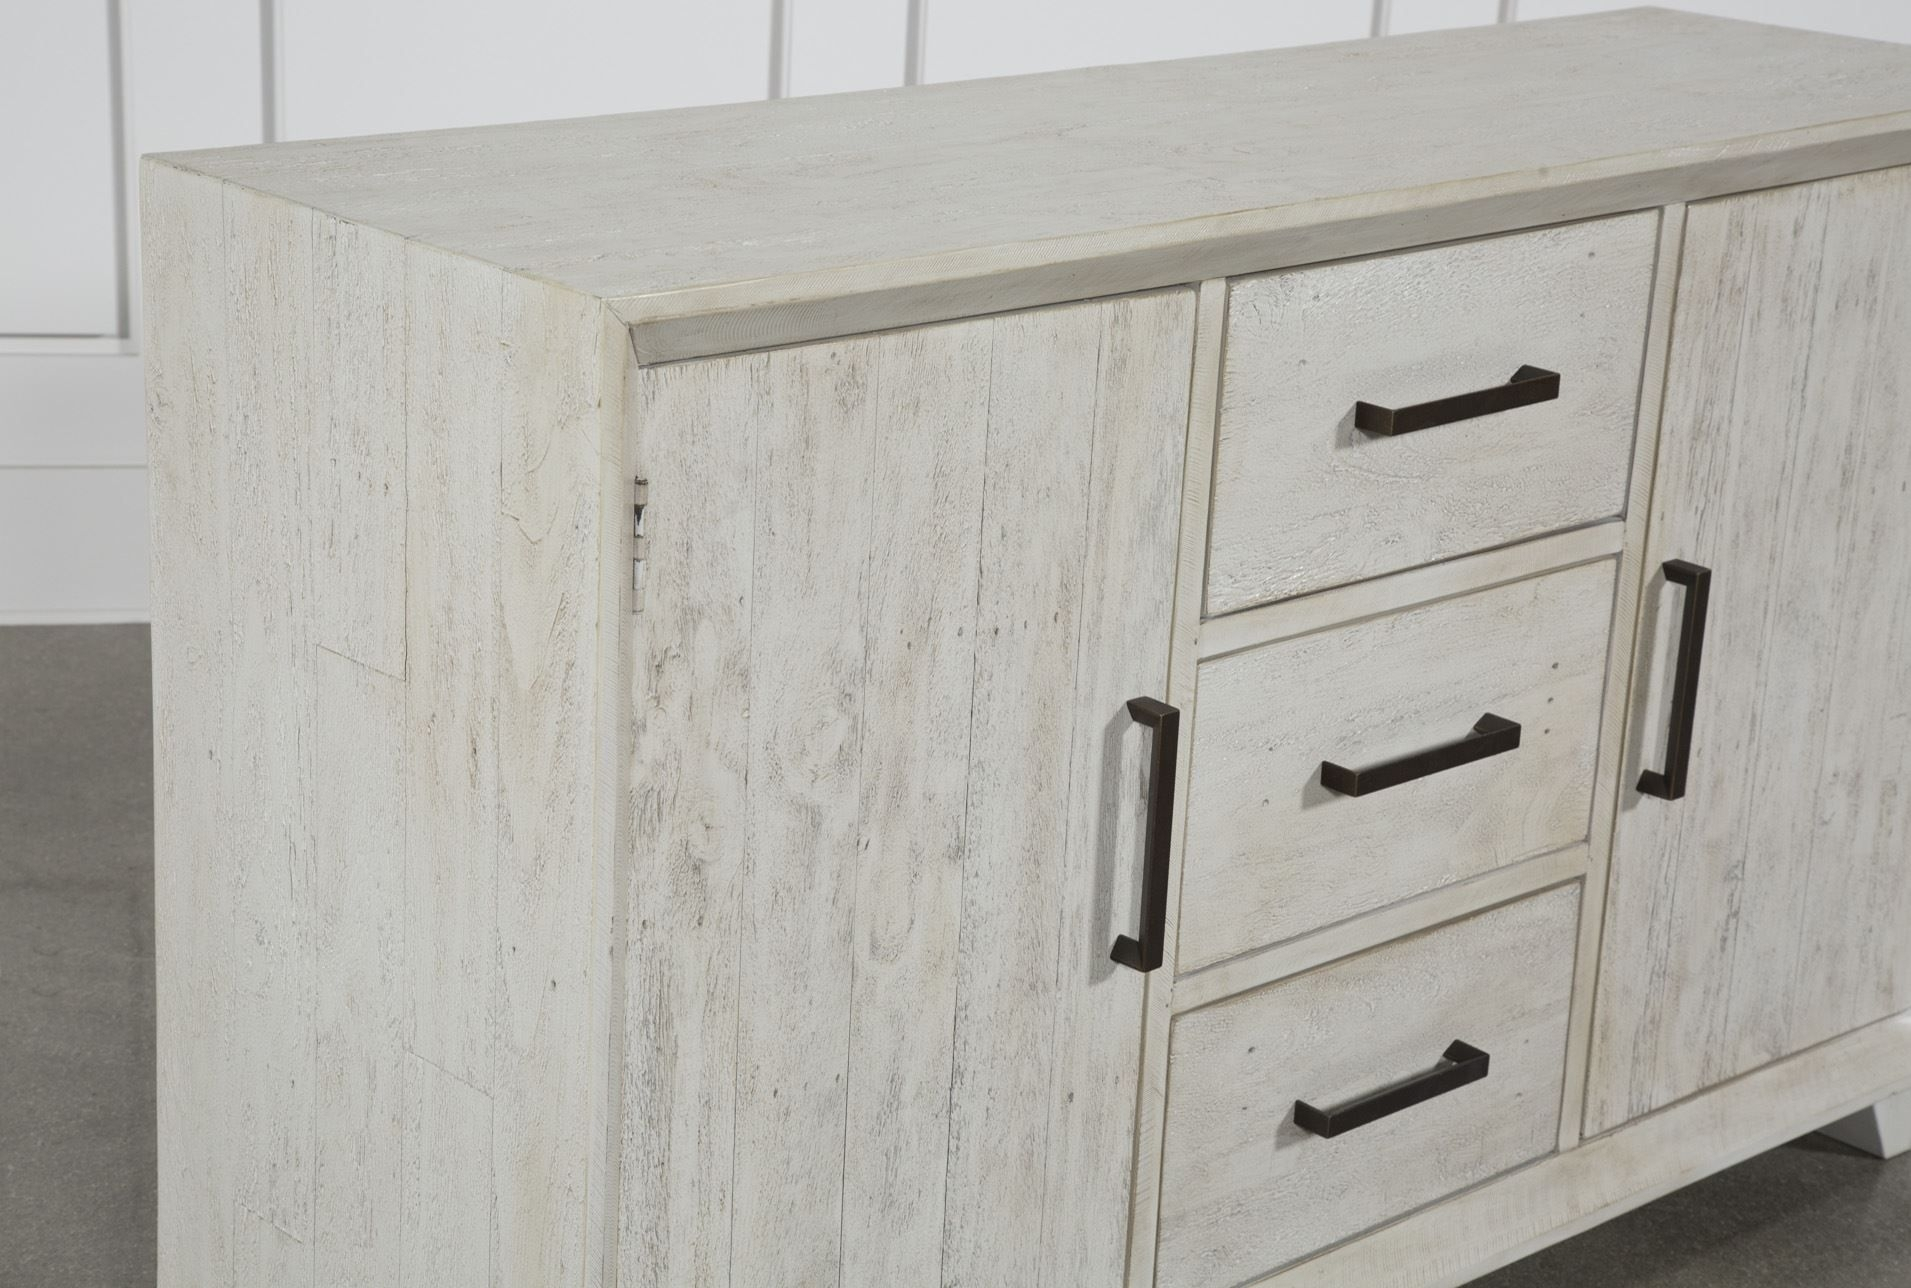 Otb Antique White Distressed 3-Drawer/2-Door Sideboard | Drawers in Antique Walnut Finish 2-Door/4-Drawer Sideboards (Image 20 of 30)